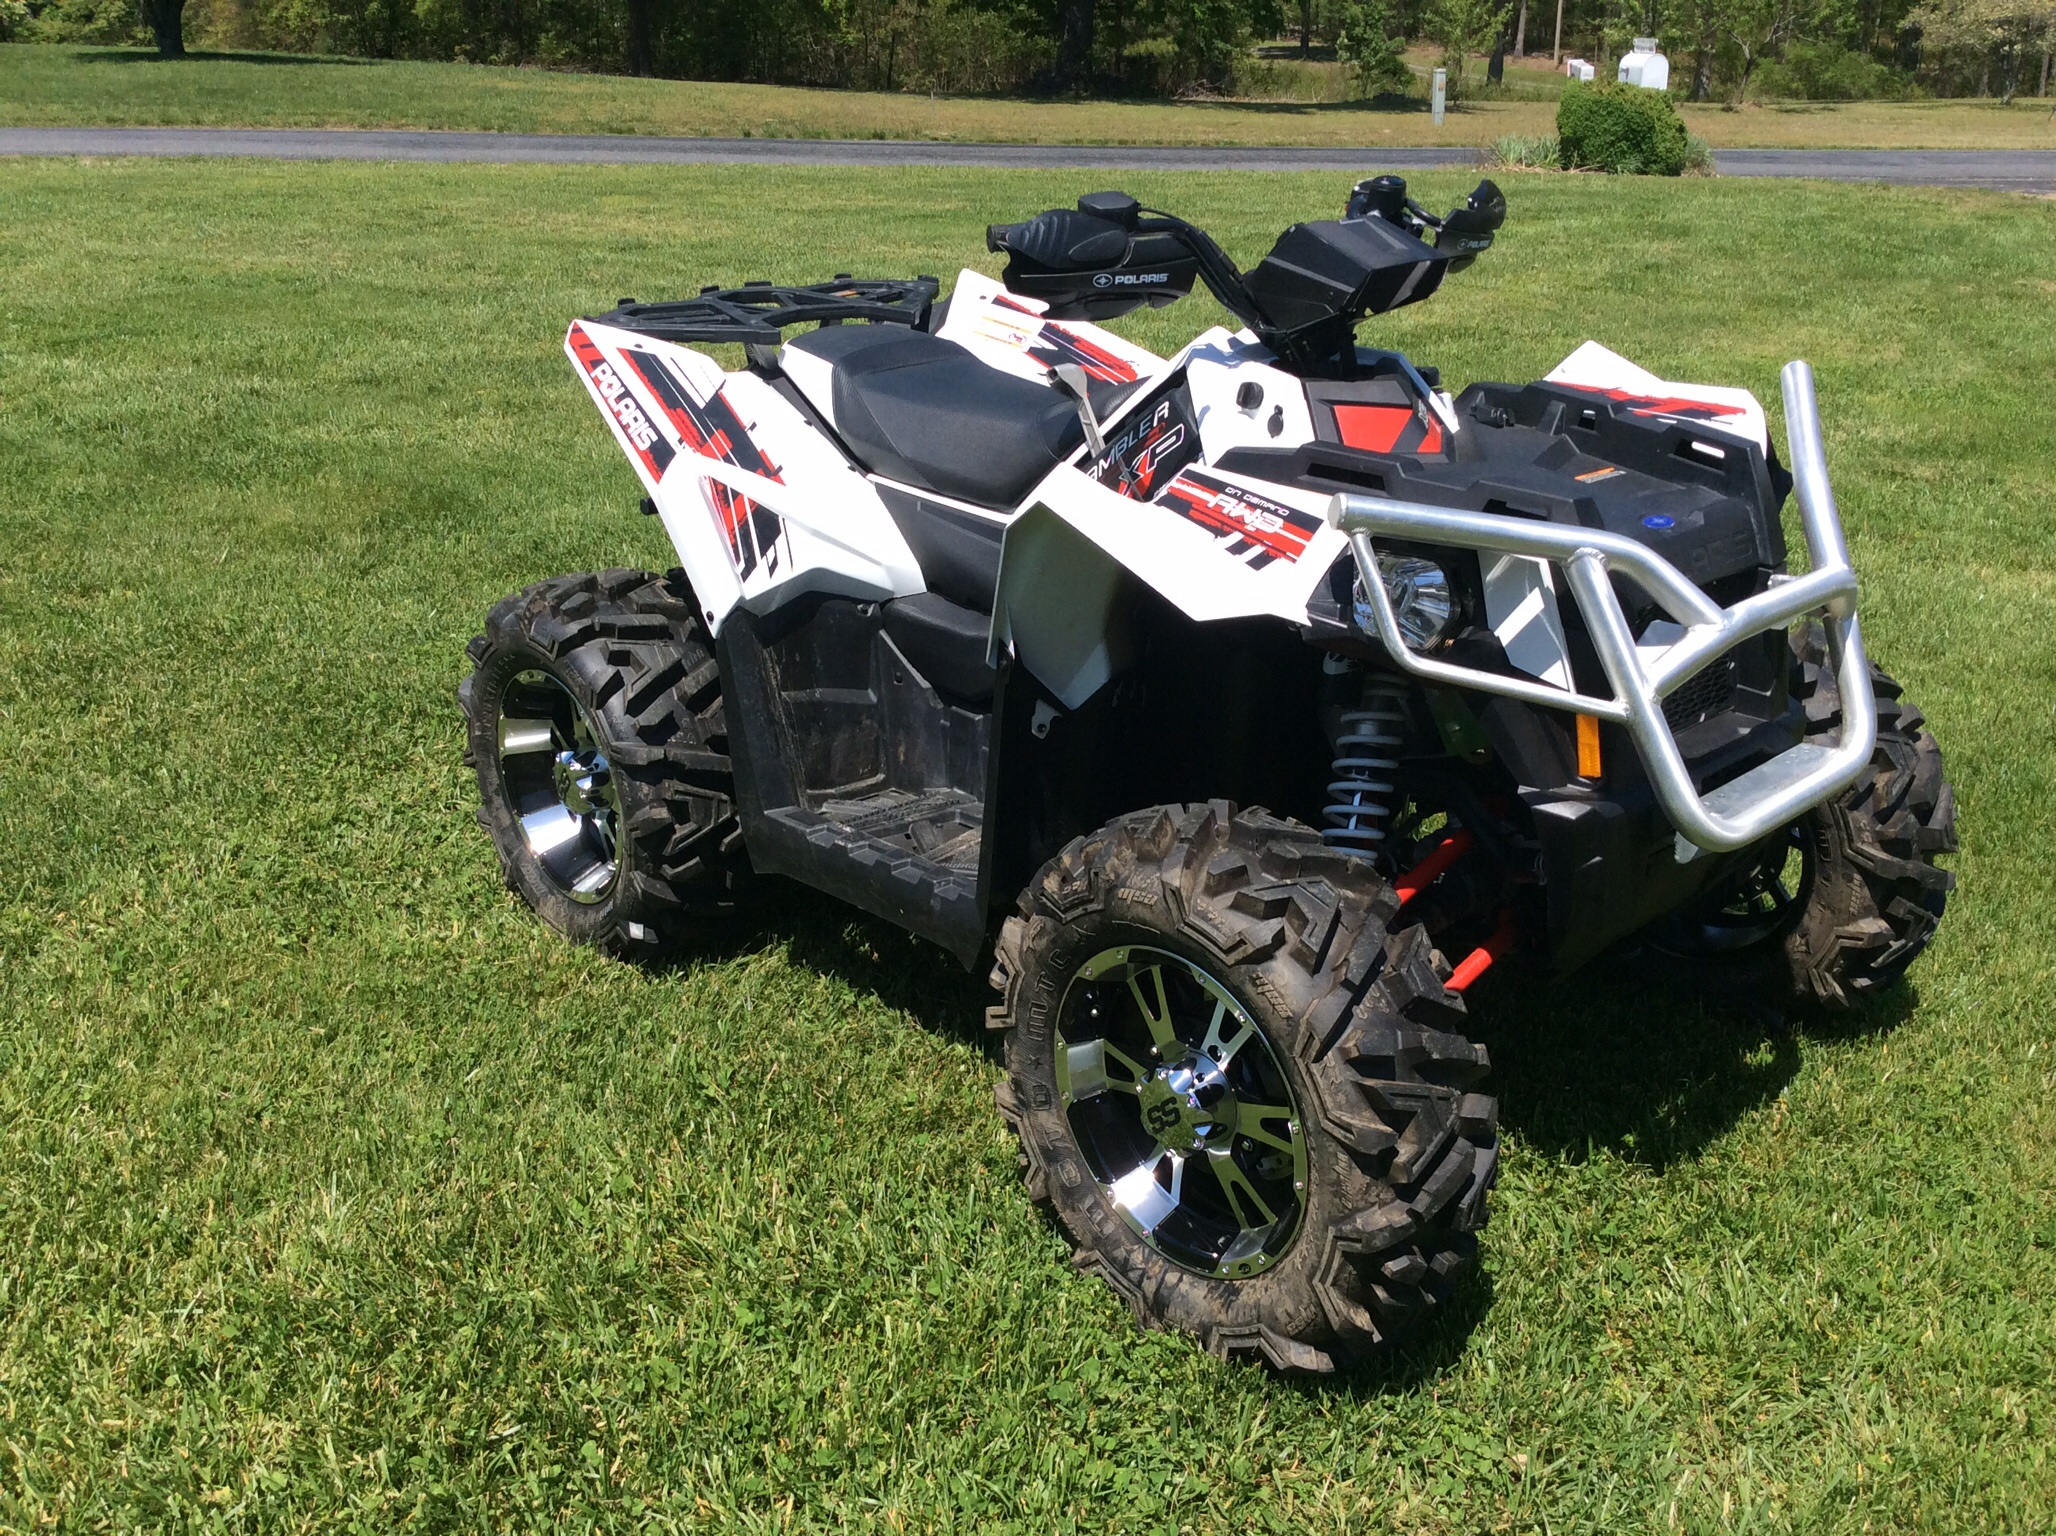 Polaris Sportsman 500 >> The Official Scrambler XP 1000 Photo Thread - Page 6 - Polaris ATV Forum